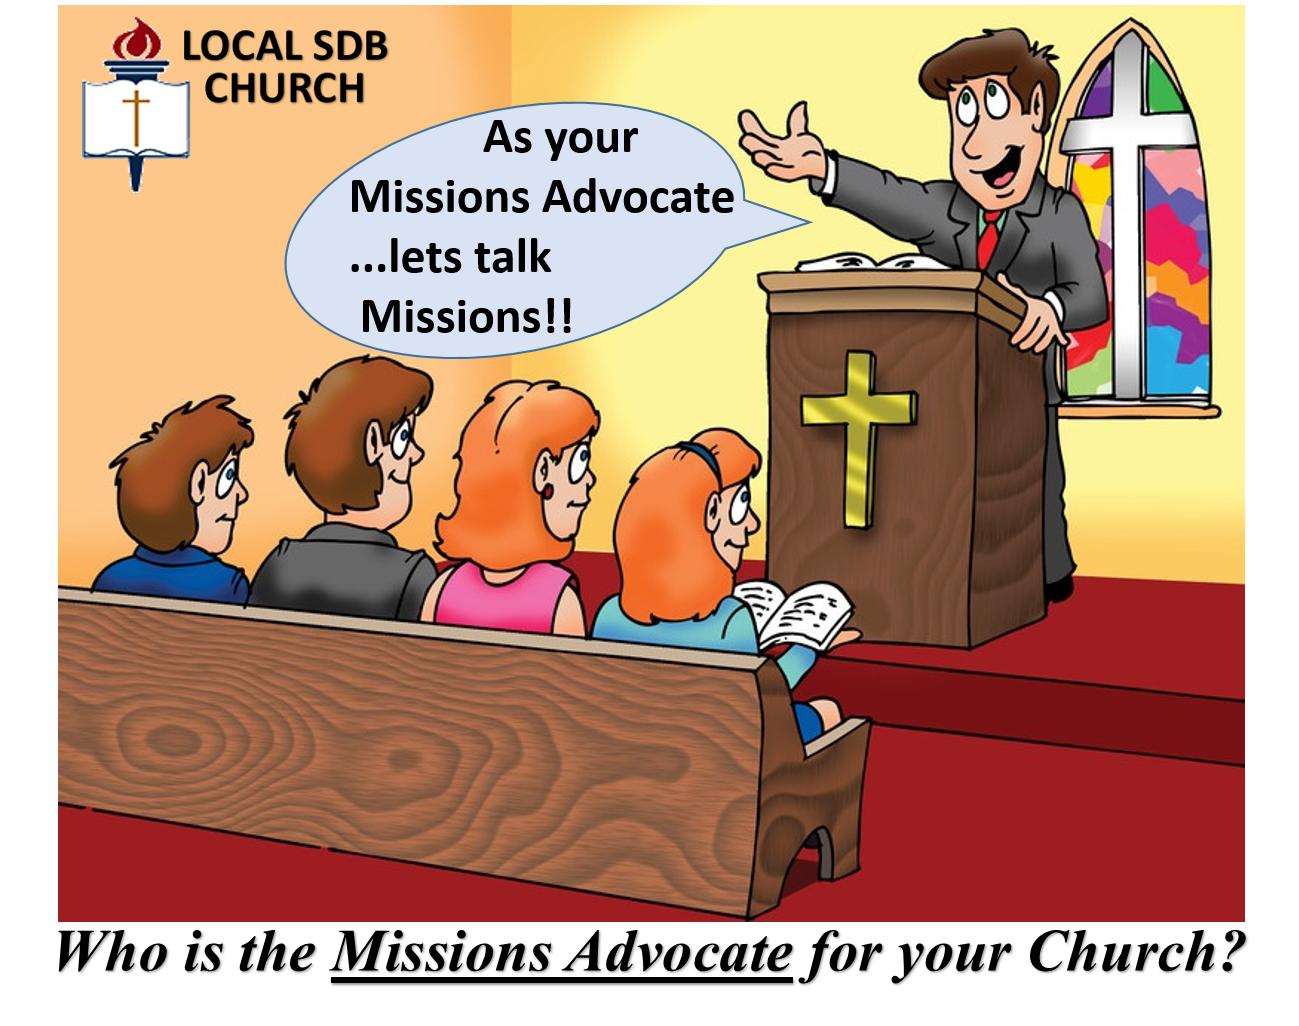 Thumbnail for the post titled: Missions Advocate Opportunity